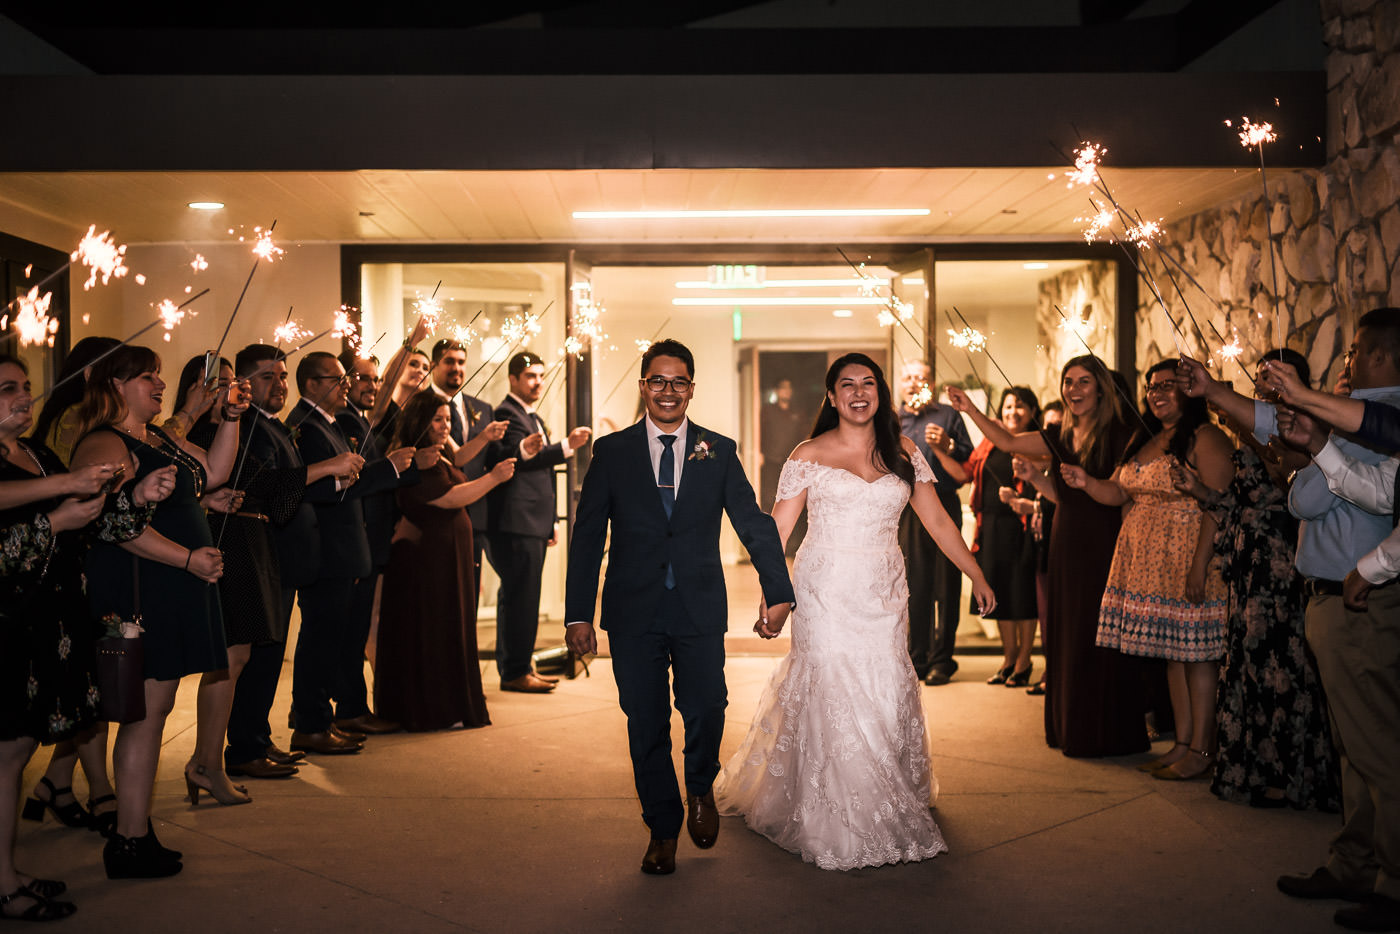 Grand exit with sparklers at this lovely couples Knollwood Country Club Wedding.